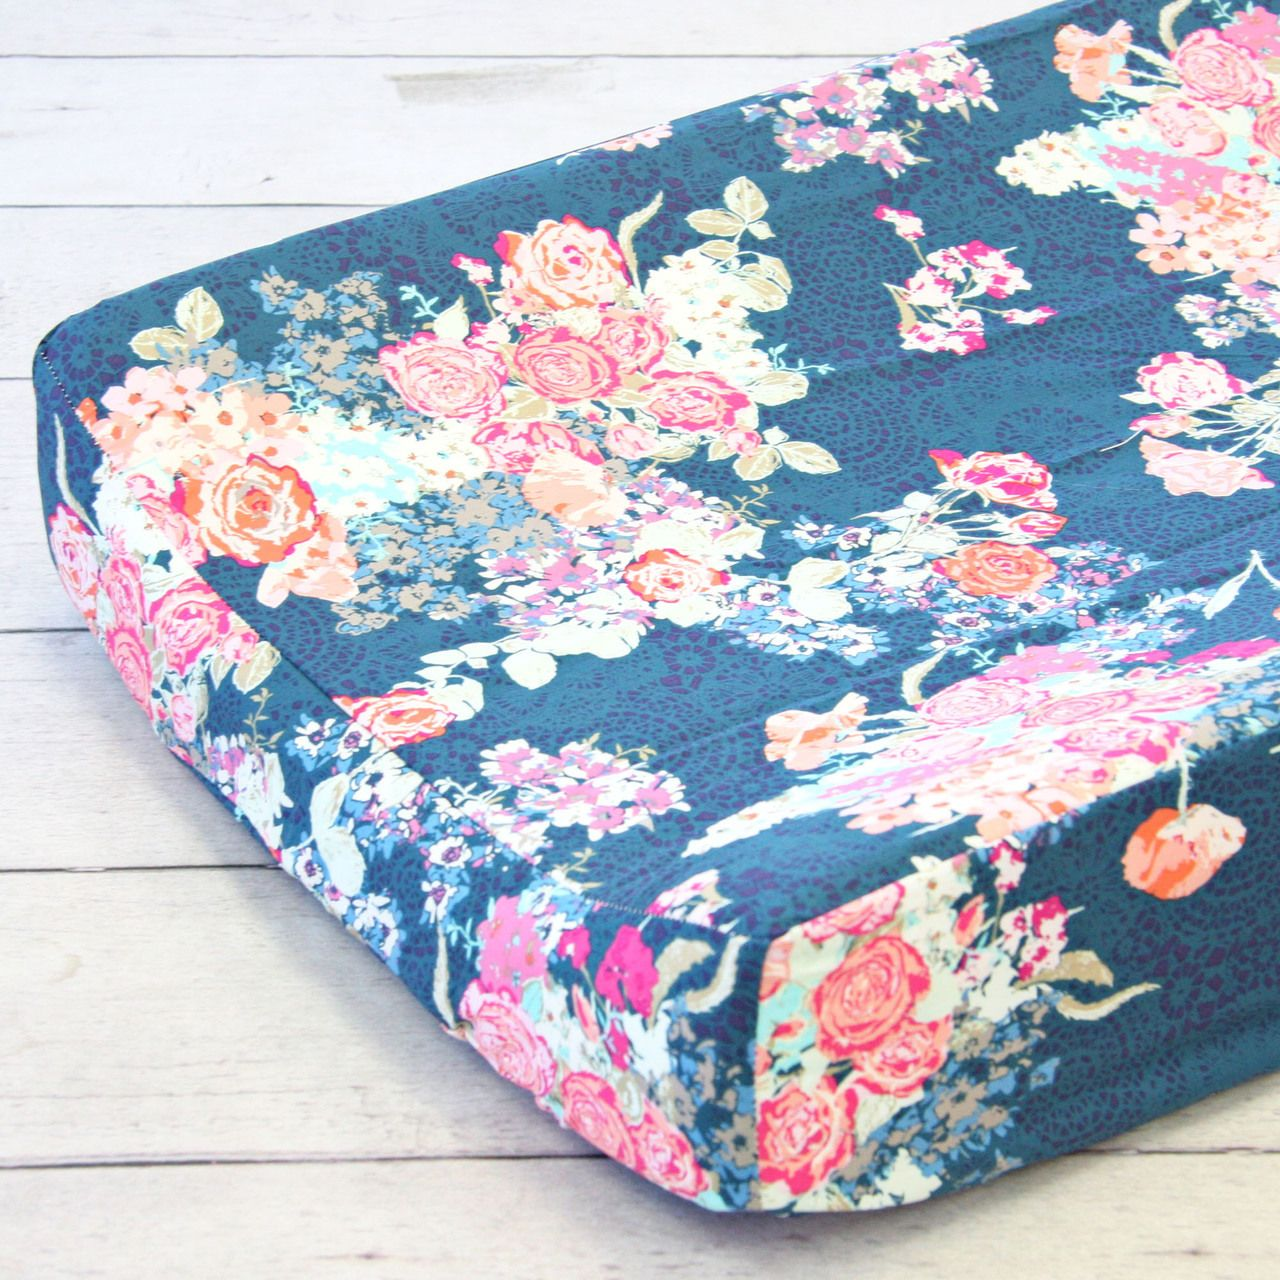 Changing pad covercharlieus coral u navy floral navy floral and